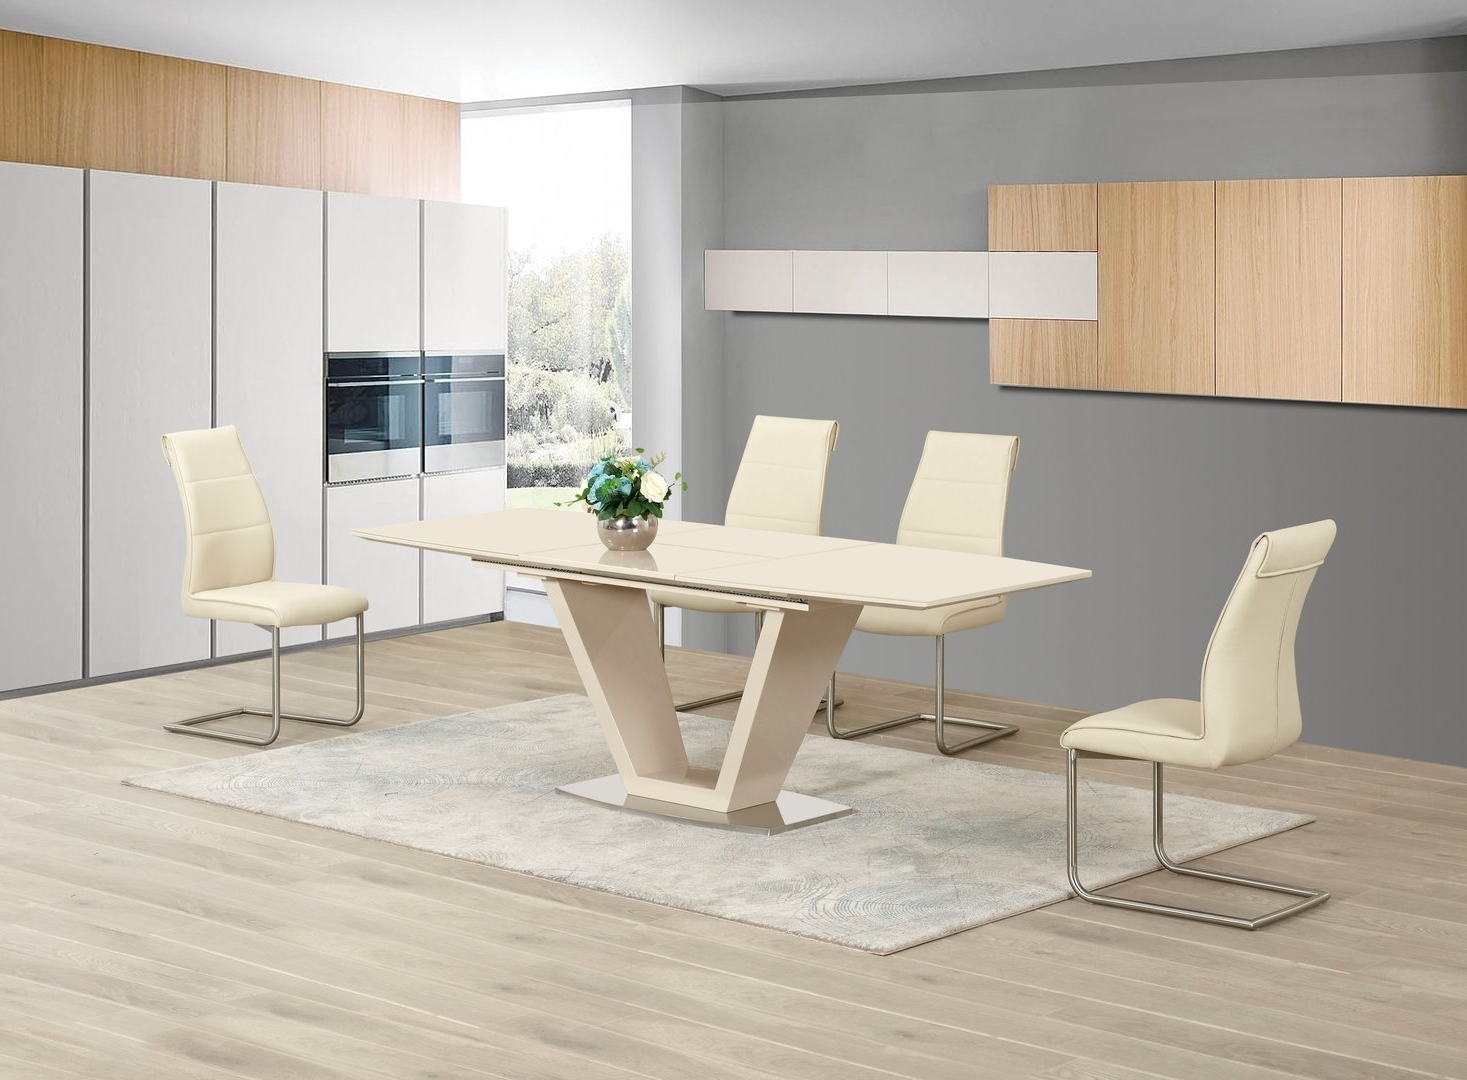 White High Gloss Oval Dining Tables In Most Current Hi Gloss Dining Table Sets – Castrophotos (View 22 of 25)